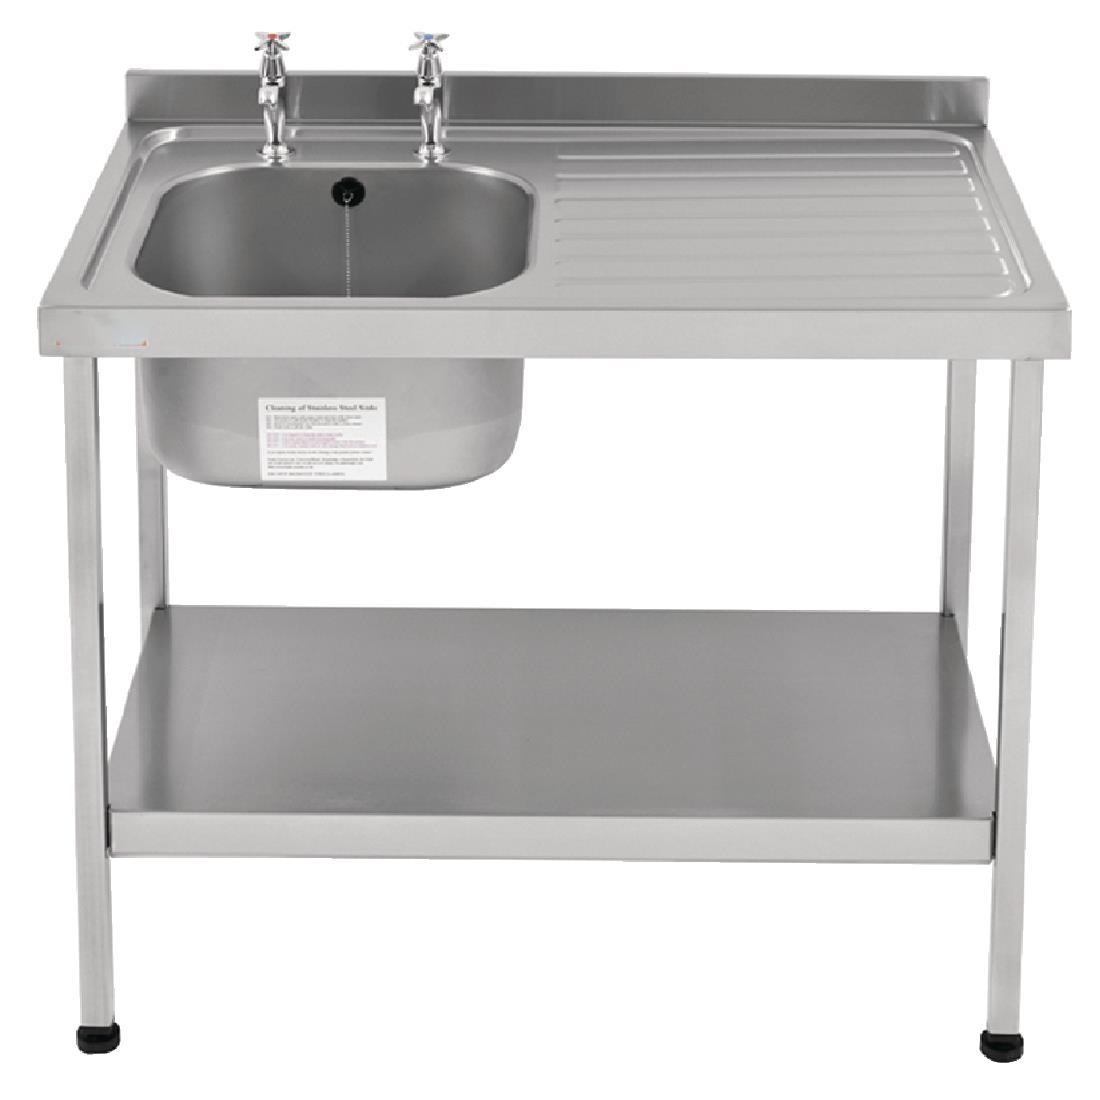 Image of Franke Sissons Self Assembly Stainless Steel Sink Right Hand Drainer 1200x600mm